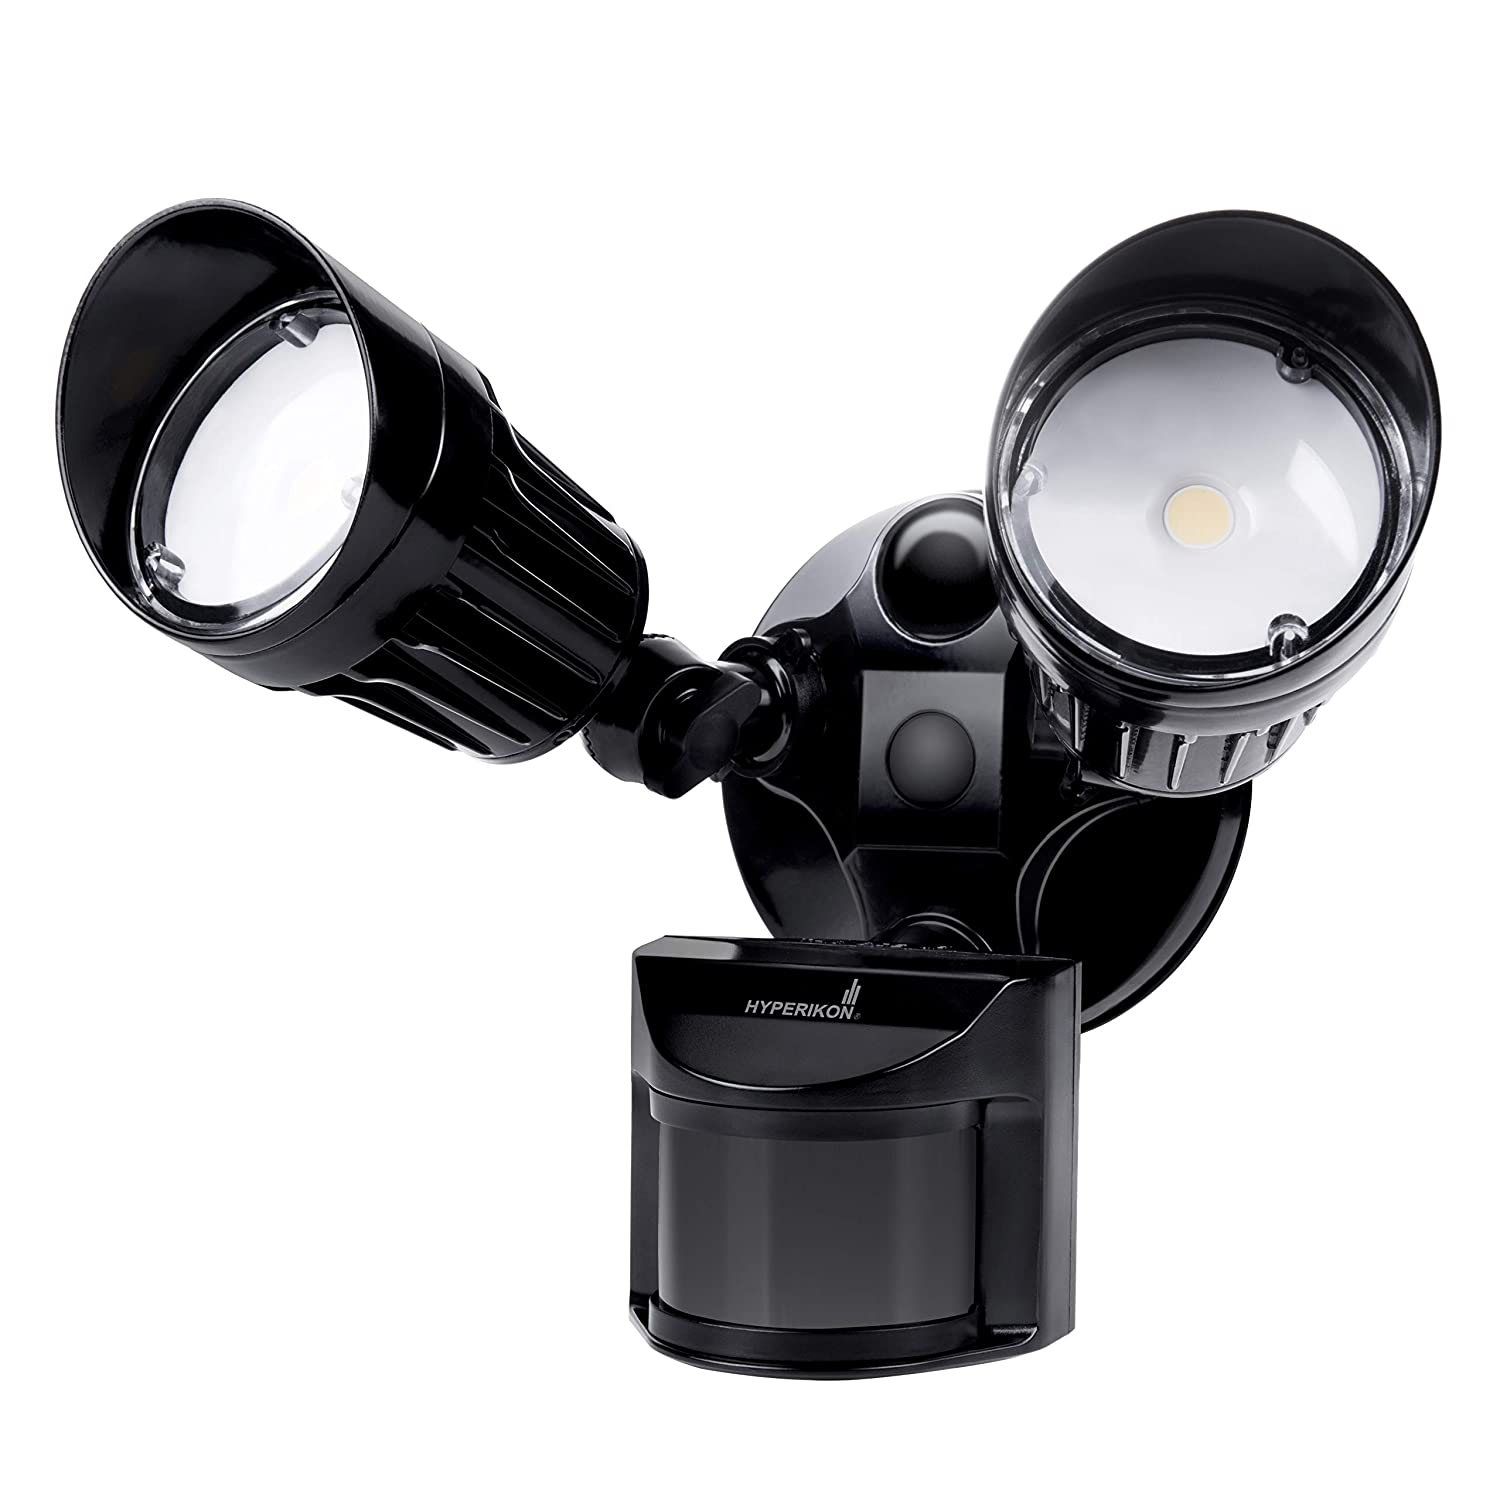 Hyperikon LED Security Light Black with Motion Sensor, 20W 100 Watt , Outdoor Flood Light Dusk to Dawn, 5000K, IP65